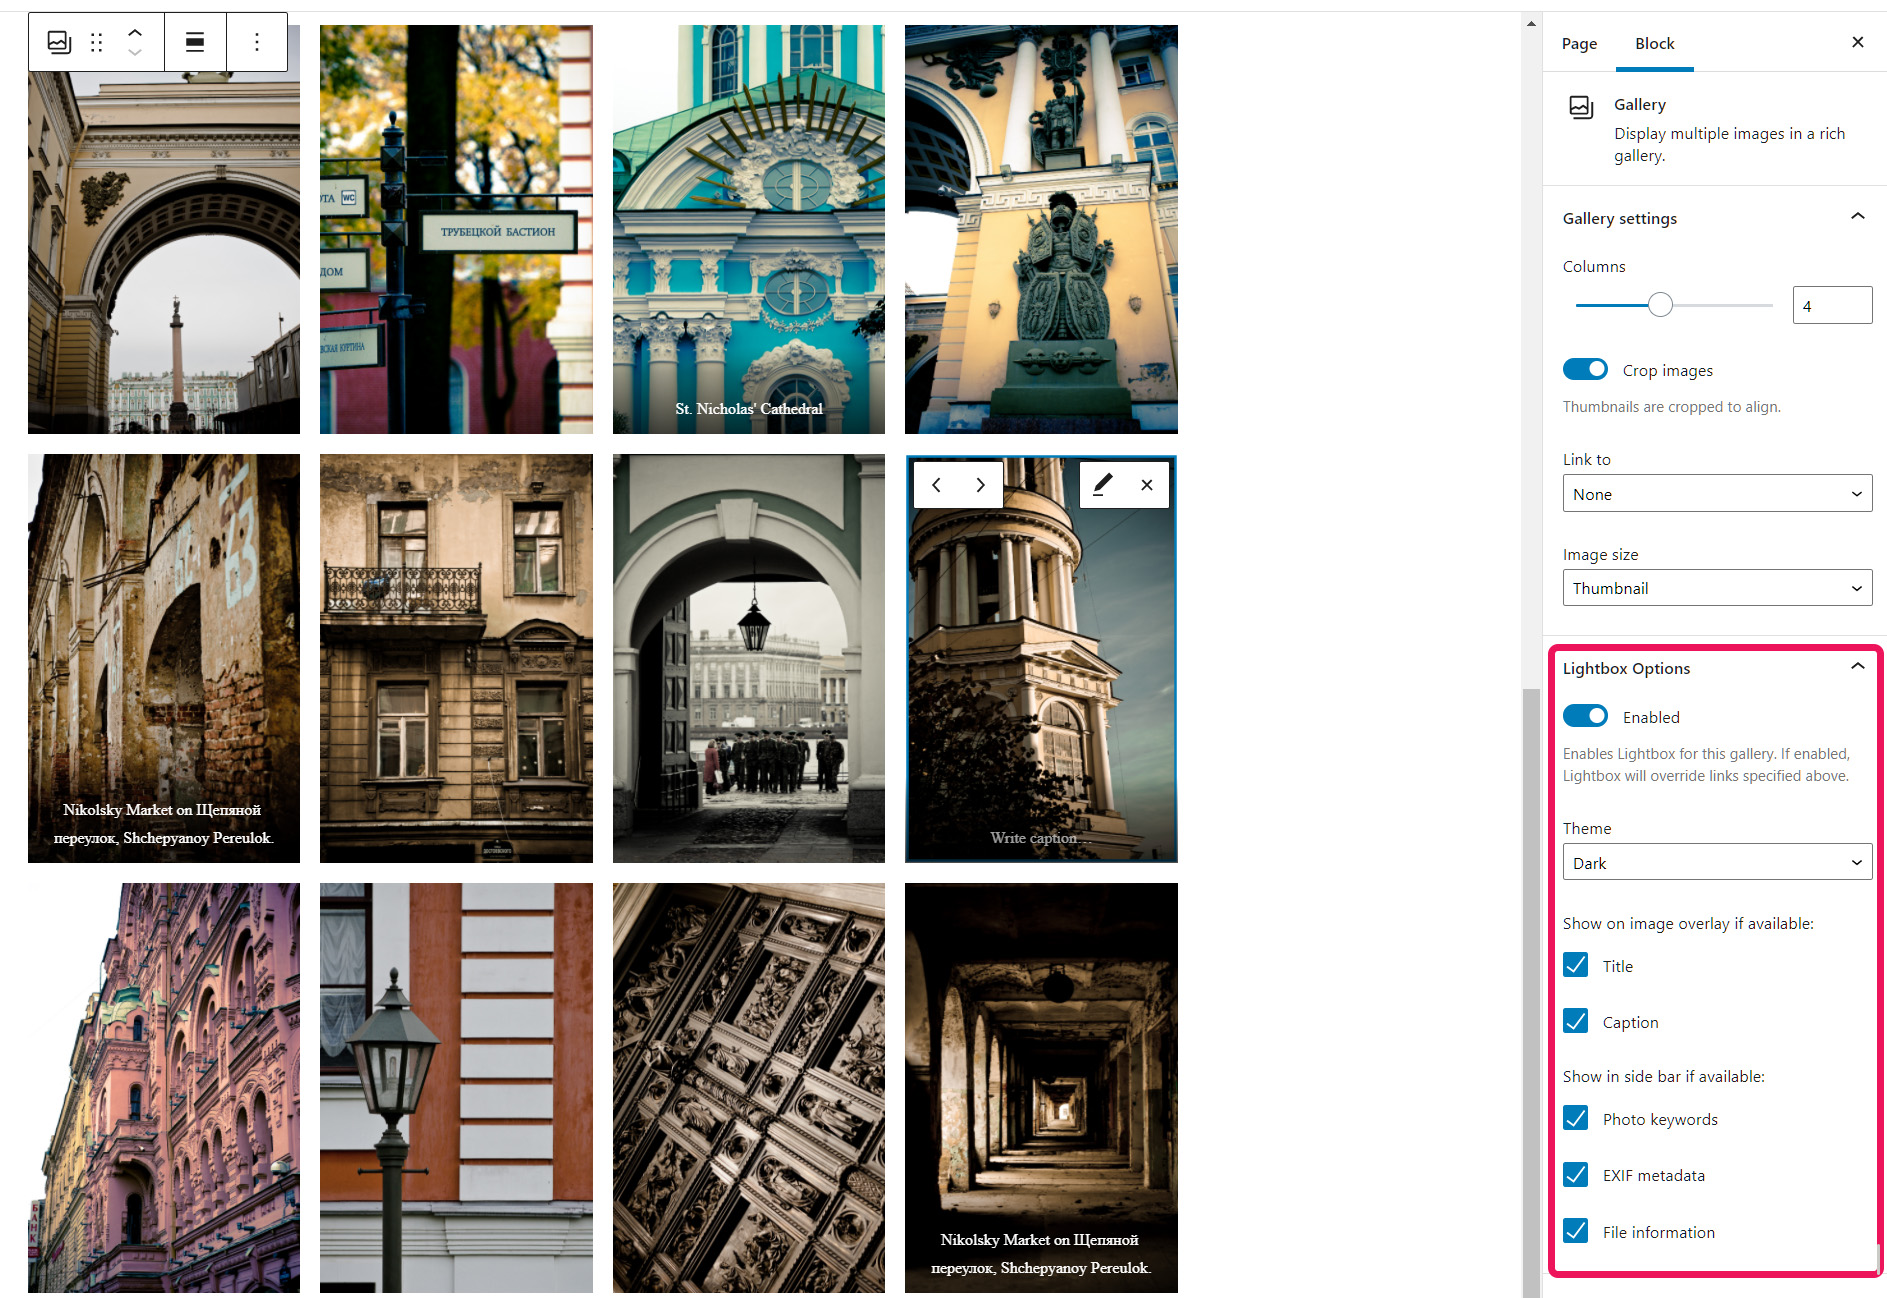 Configure the lightbox for each gallery directly within the Wordpress block editor.